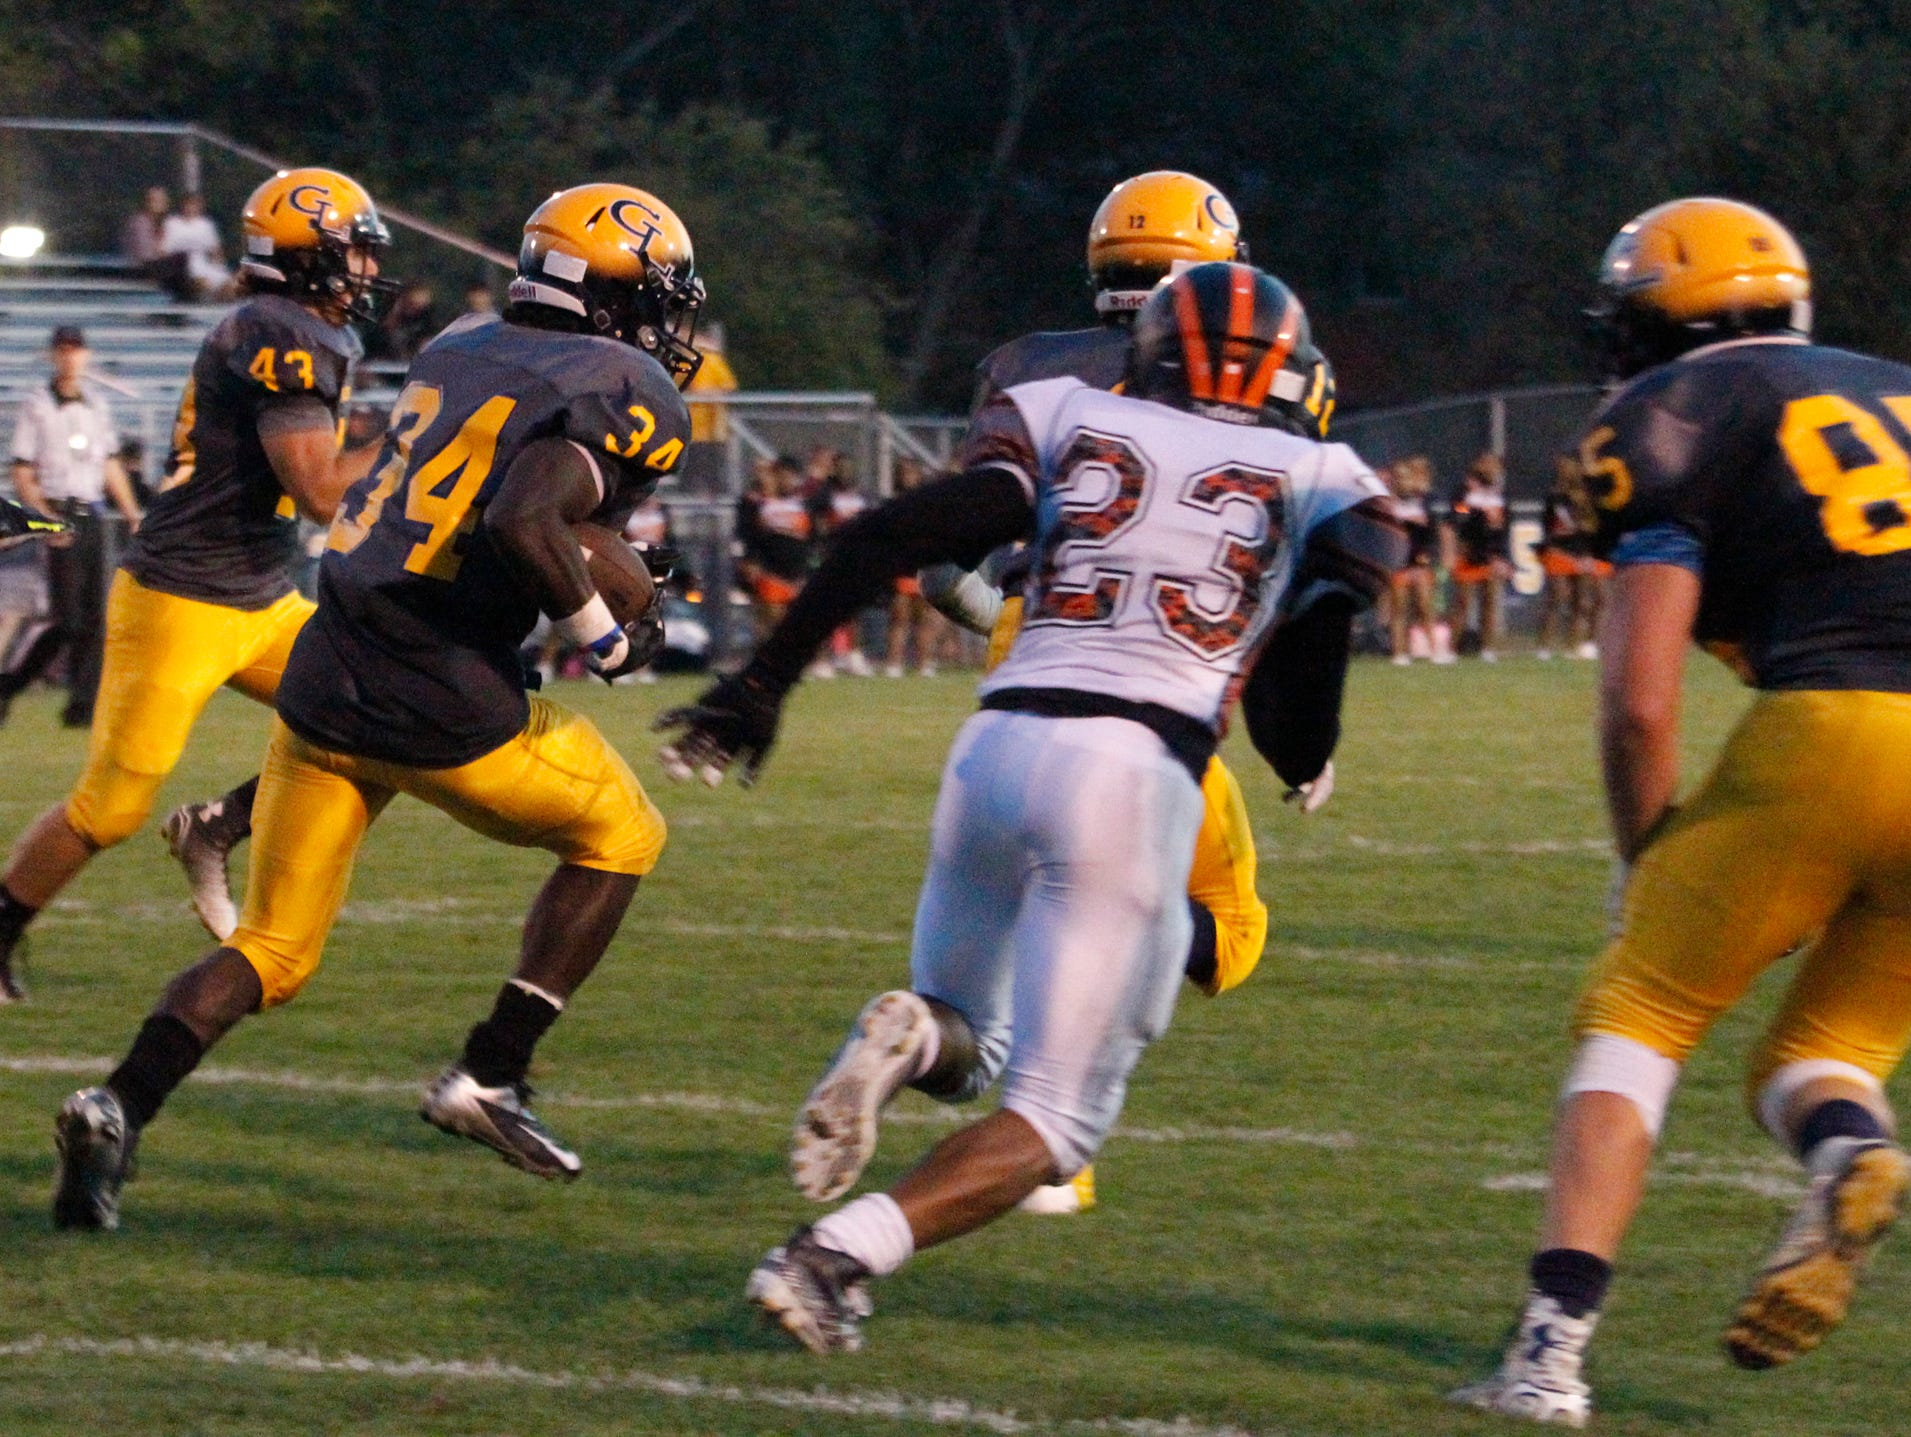 Grand Ledge RB Ba Blamo finds a hole against Jackson September 25, 2015, at Grand Ledge. [MATTHEW DAE SMITH | for the Lansing State Journal]